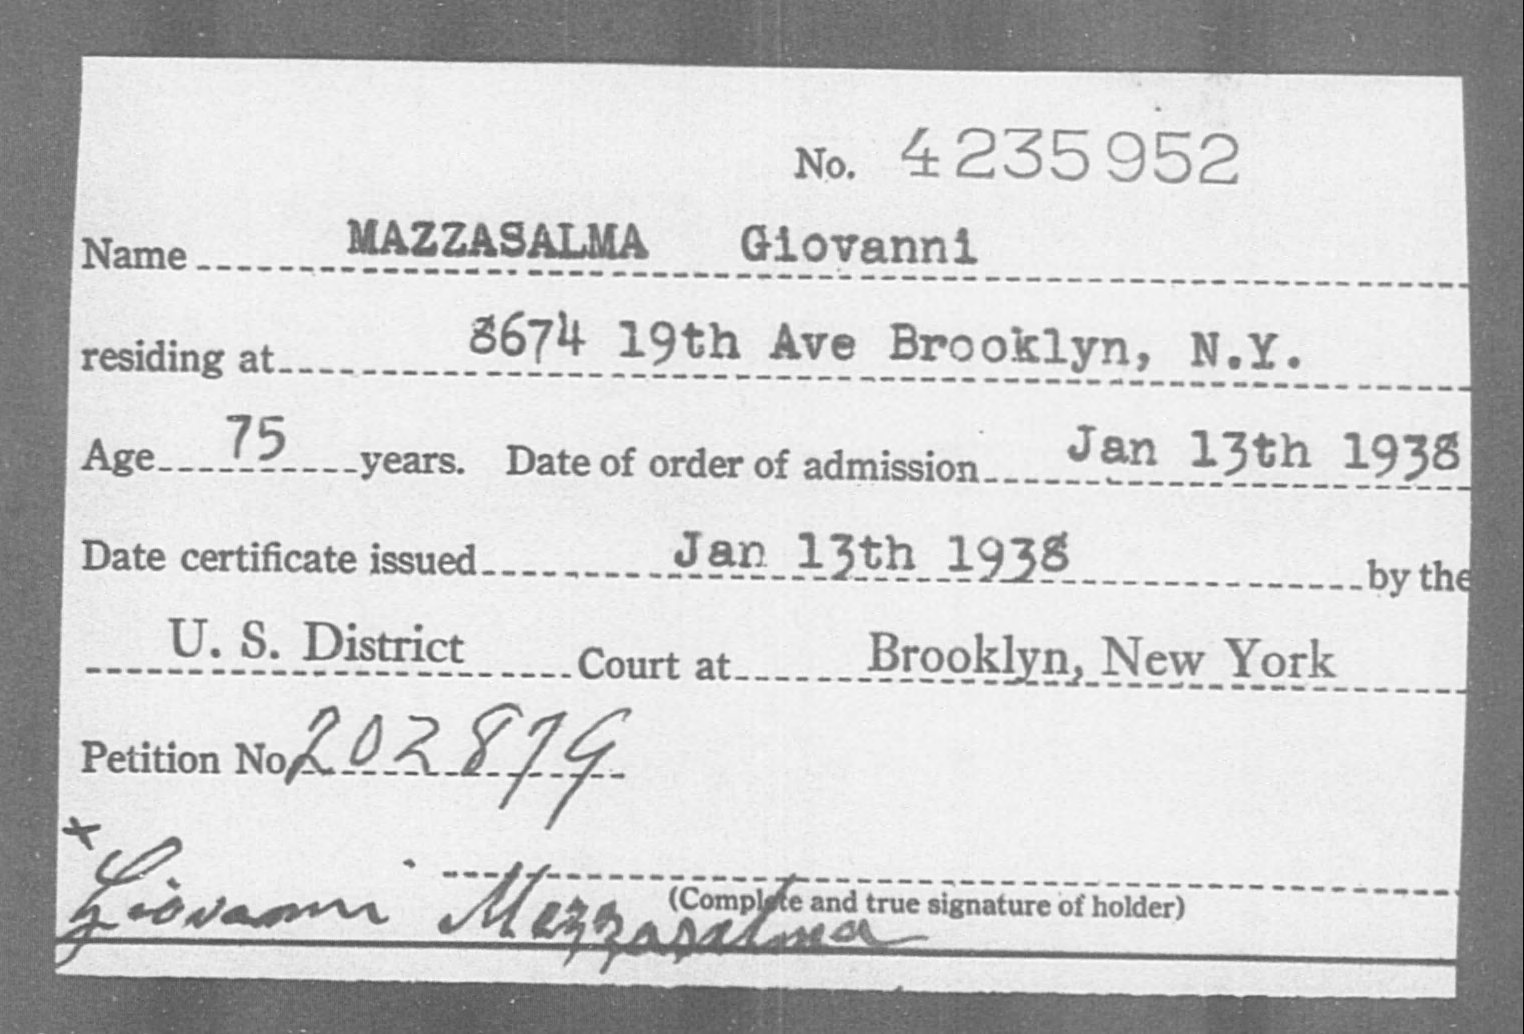 MAZZASALMA Giovanni - Born: [BLANK], Naturalized: 1938